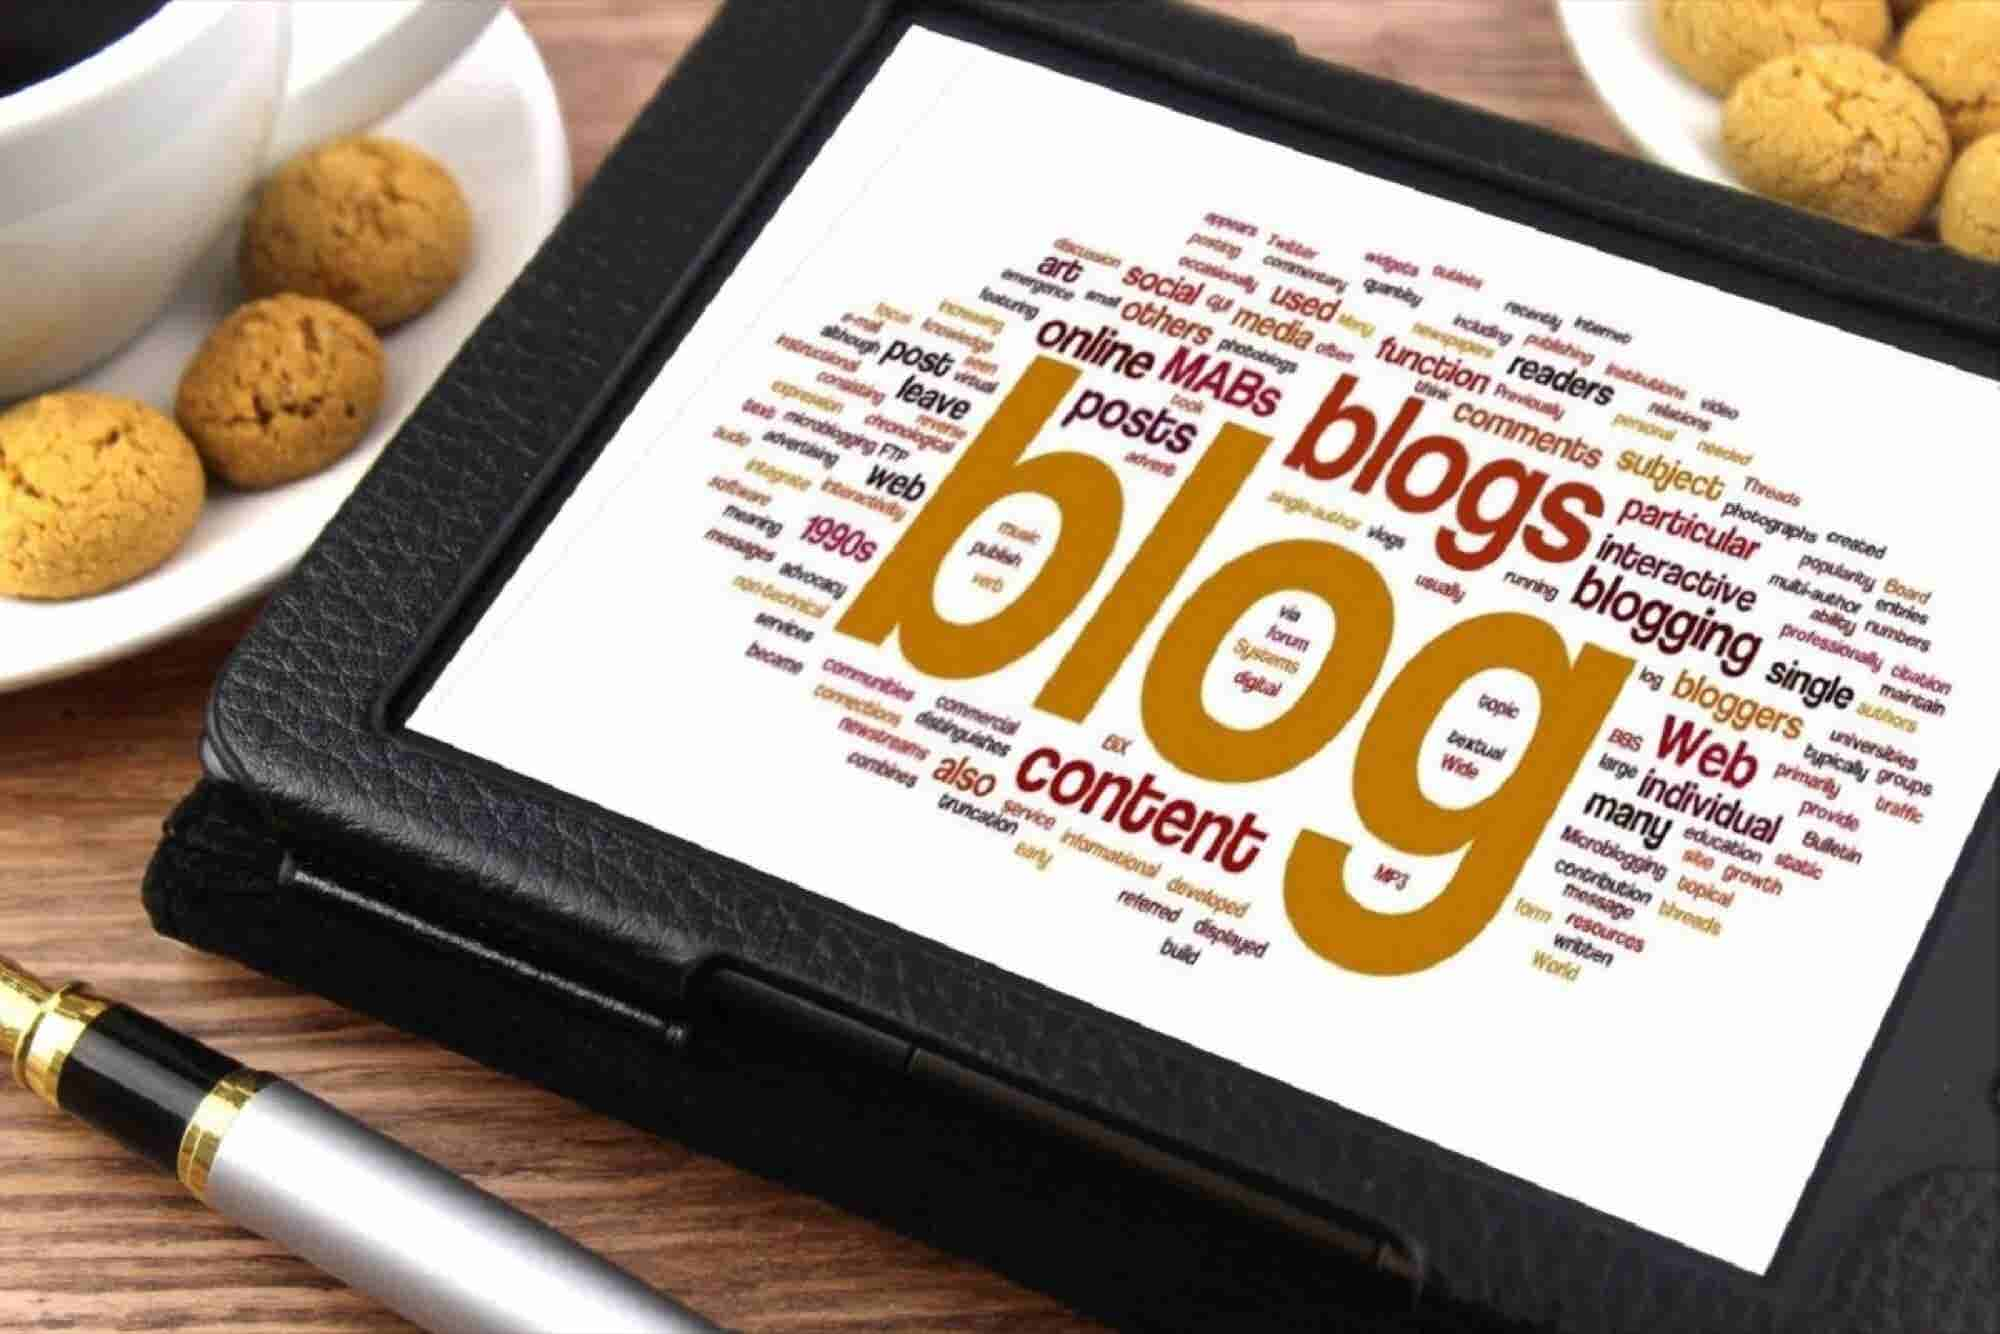 How The Power Of Your Network Increases The Credibility Of Your Blog